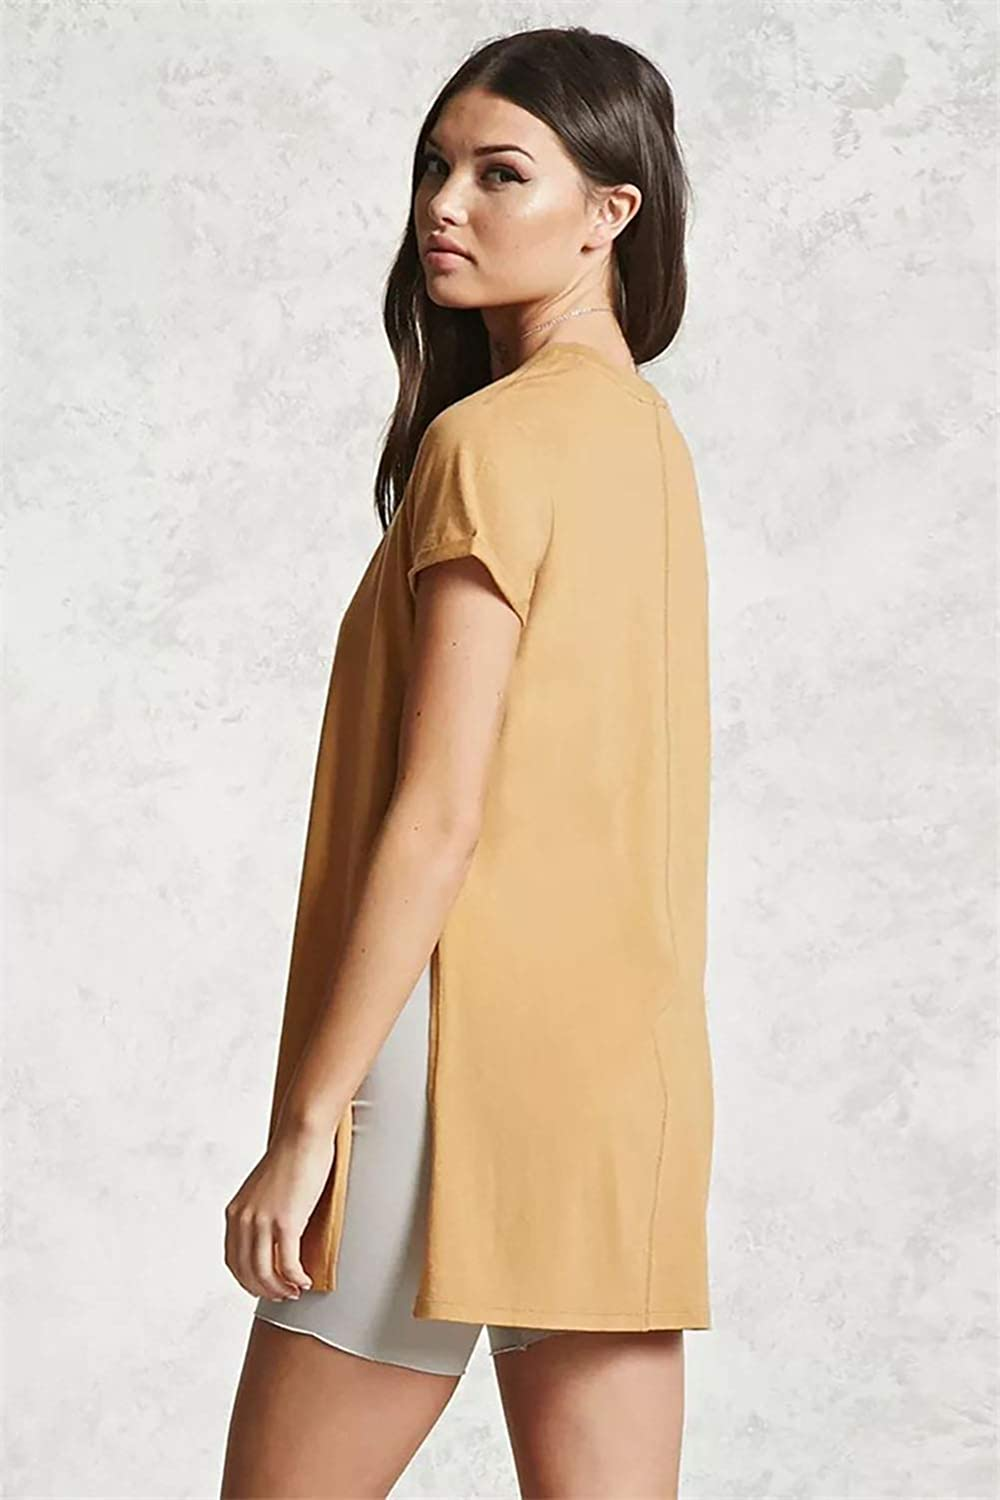 ENCOCO Womens Side Slit Shirt Casual Blouse Top Solid Color Short Sleeve T Shirt